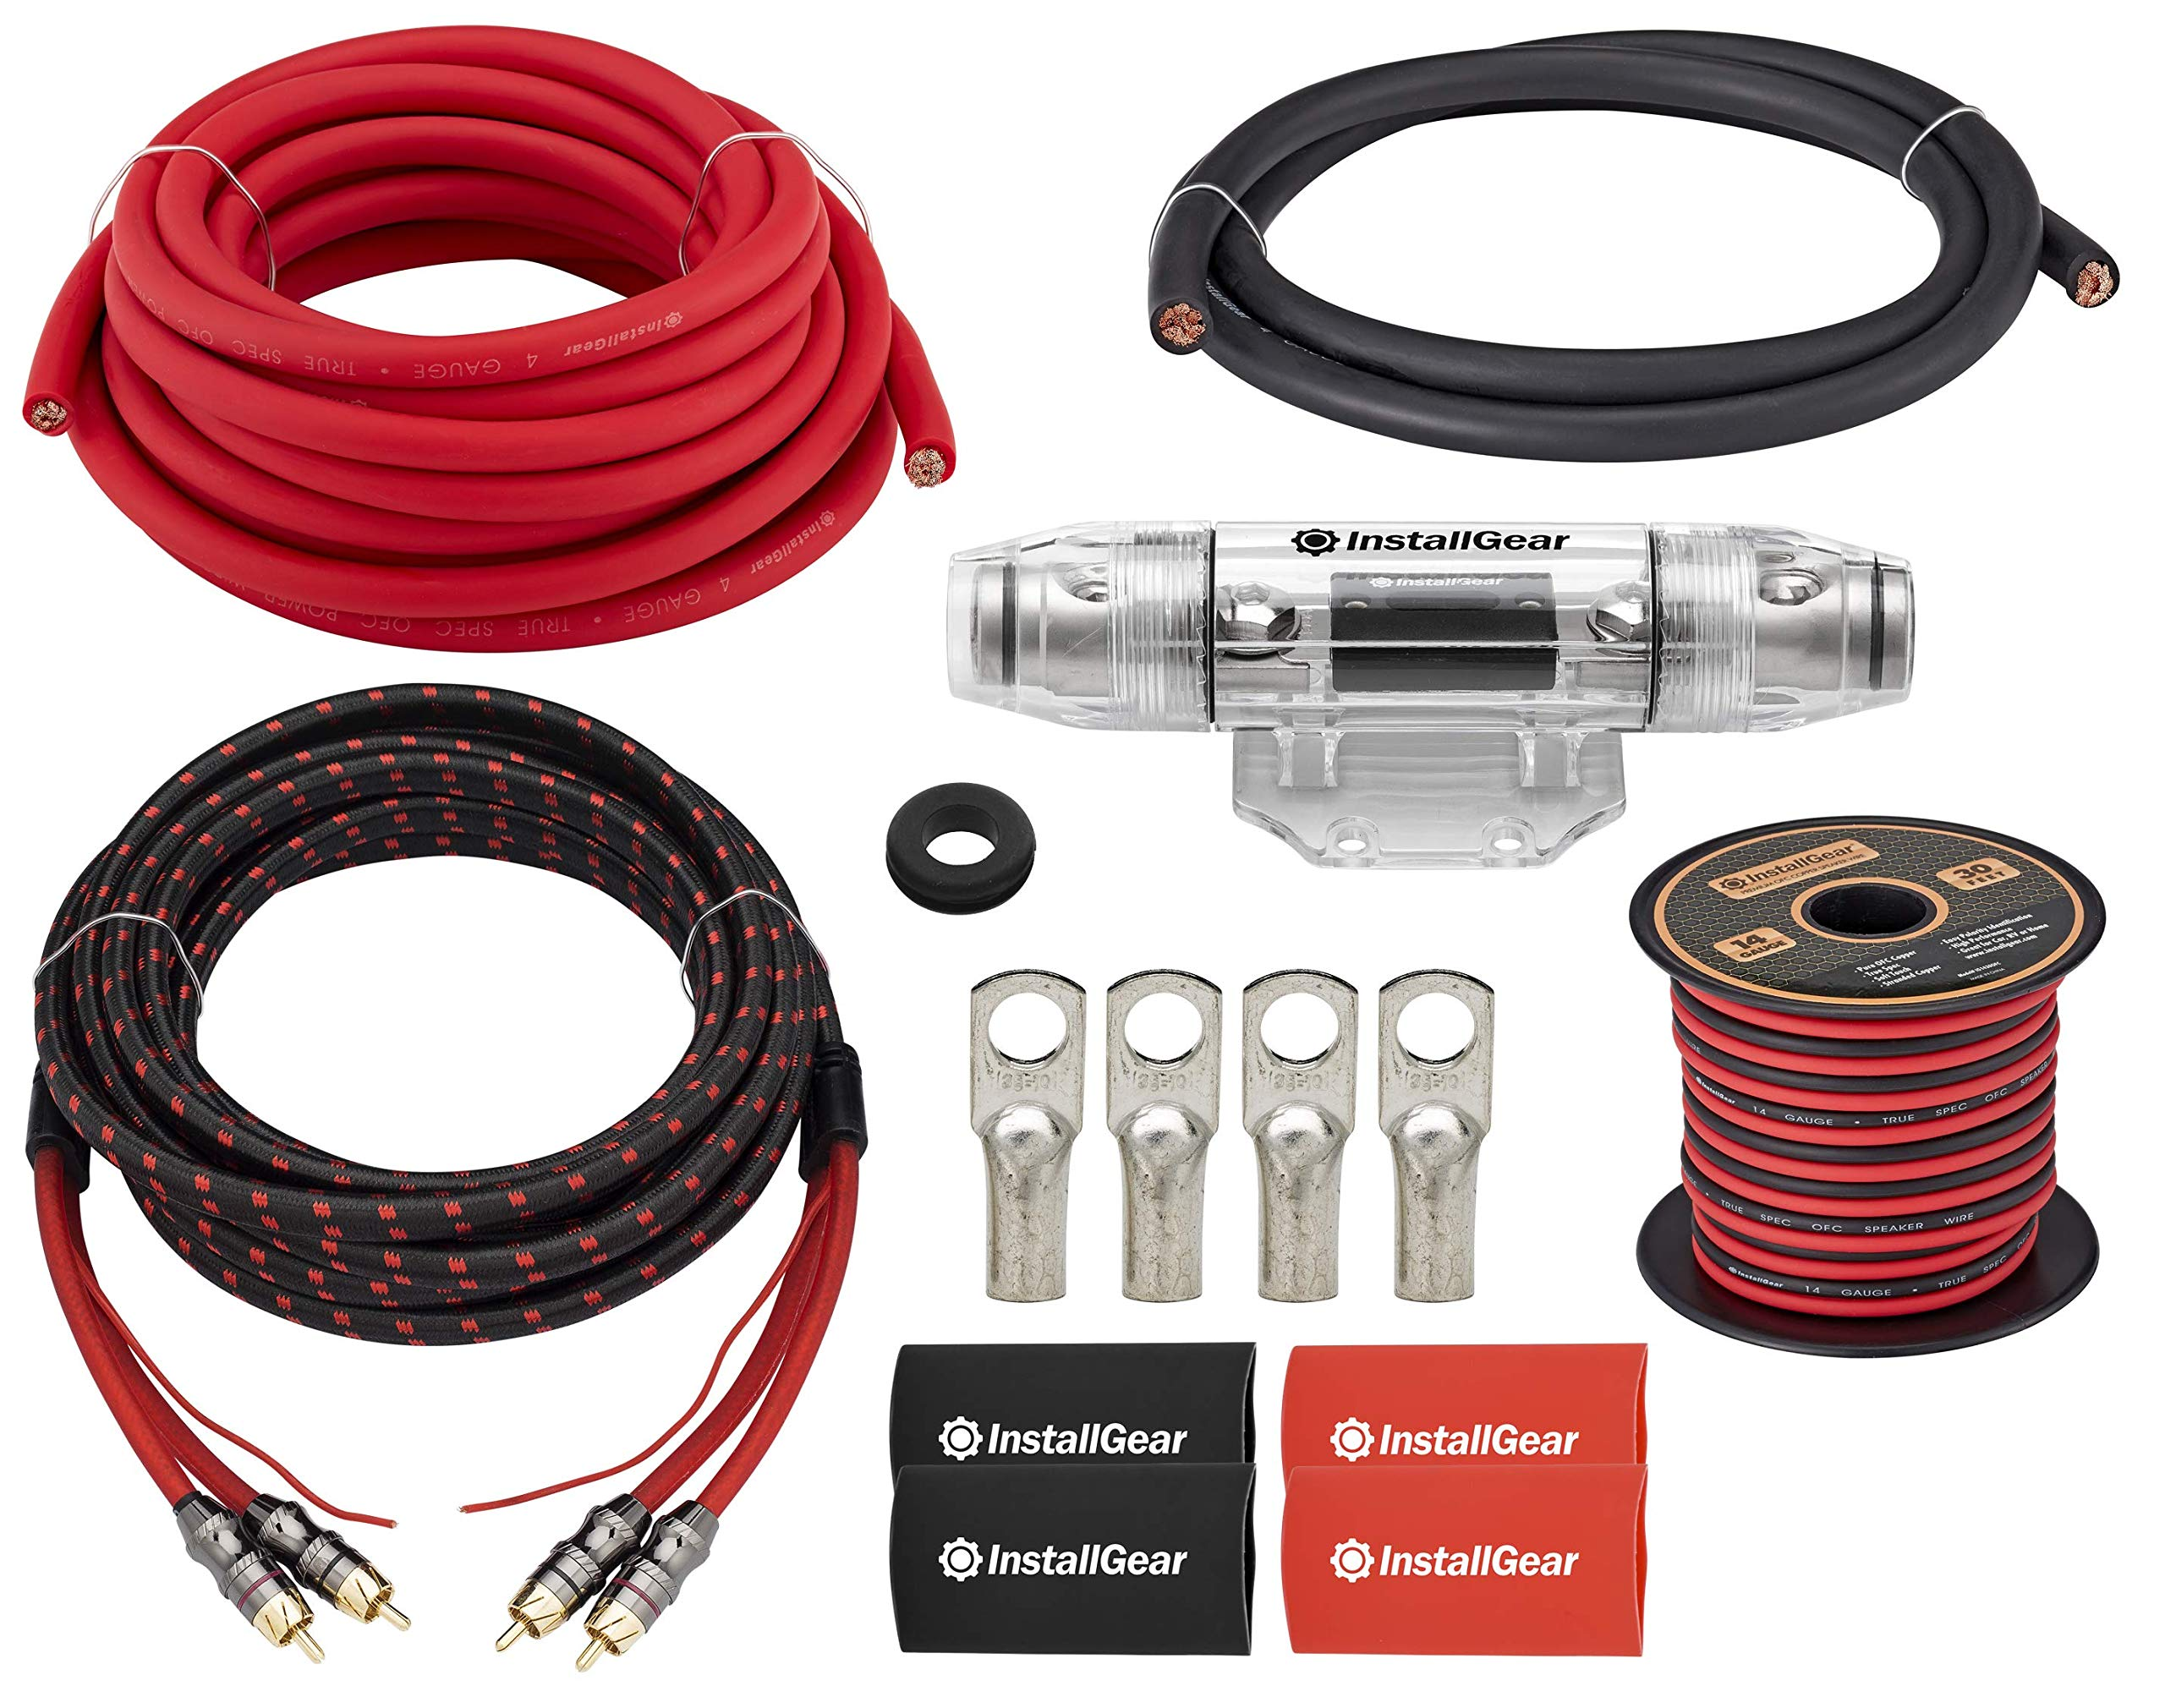 InstallGear 4 Gauge OFC Amp Kit with 20ft Power Wire (99.9% Oxygen-Free Copper)